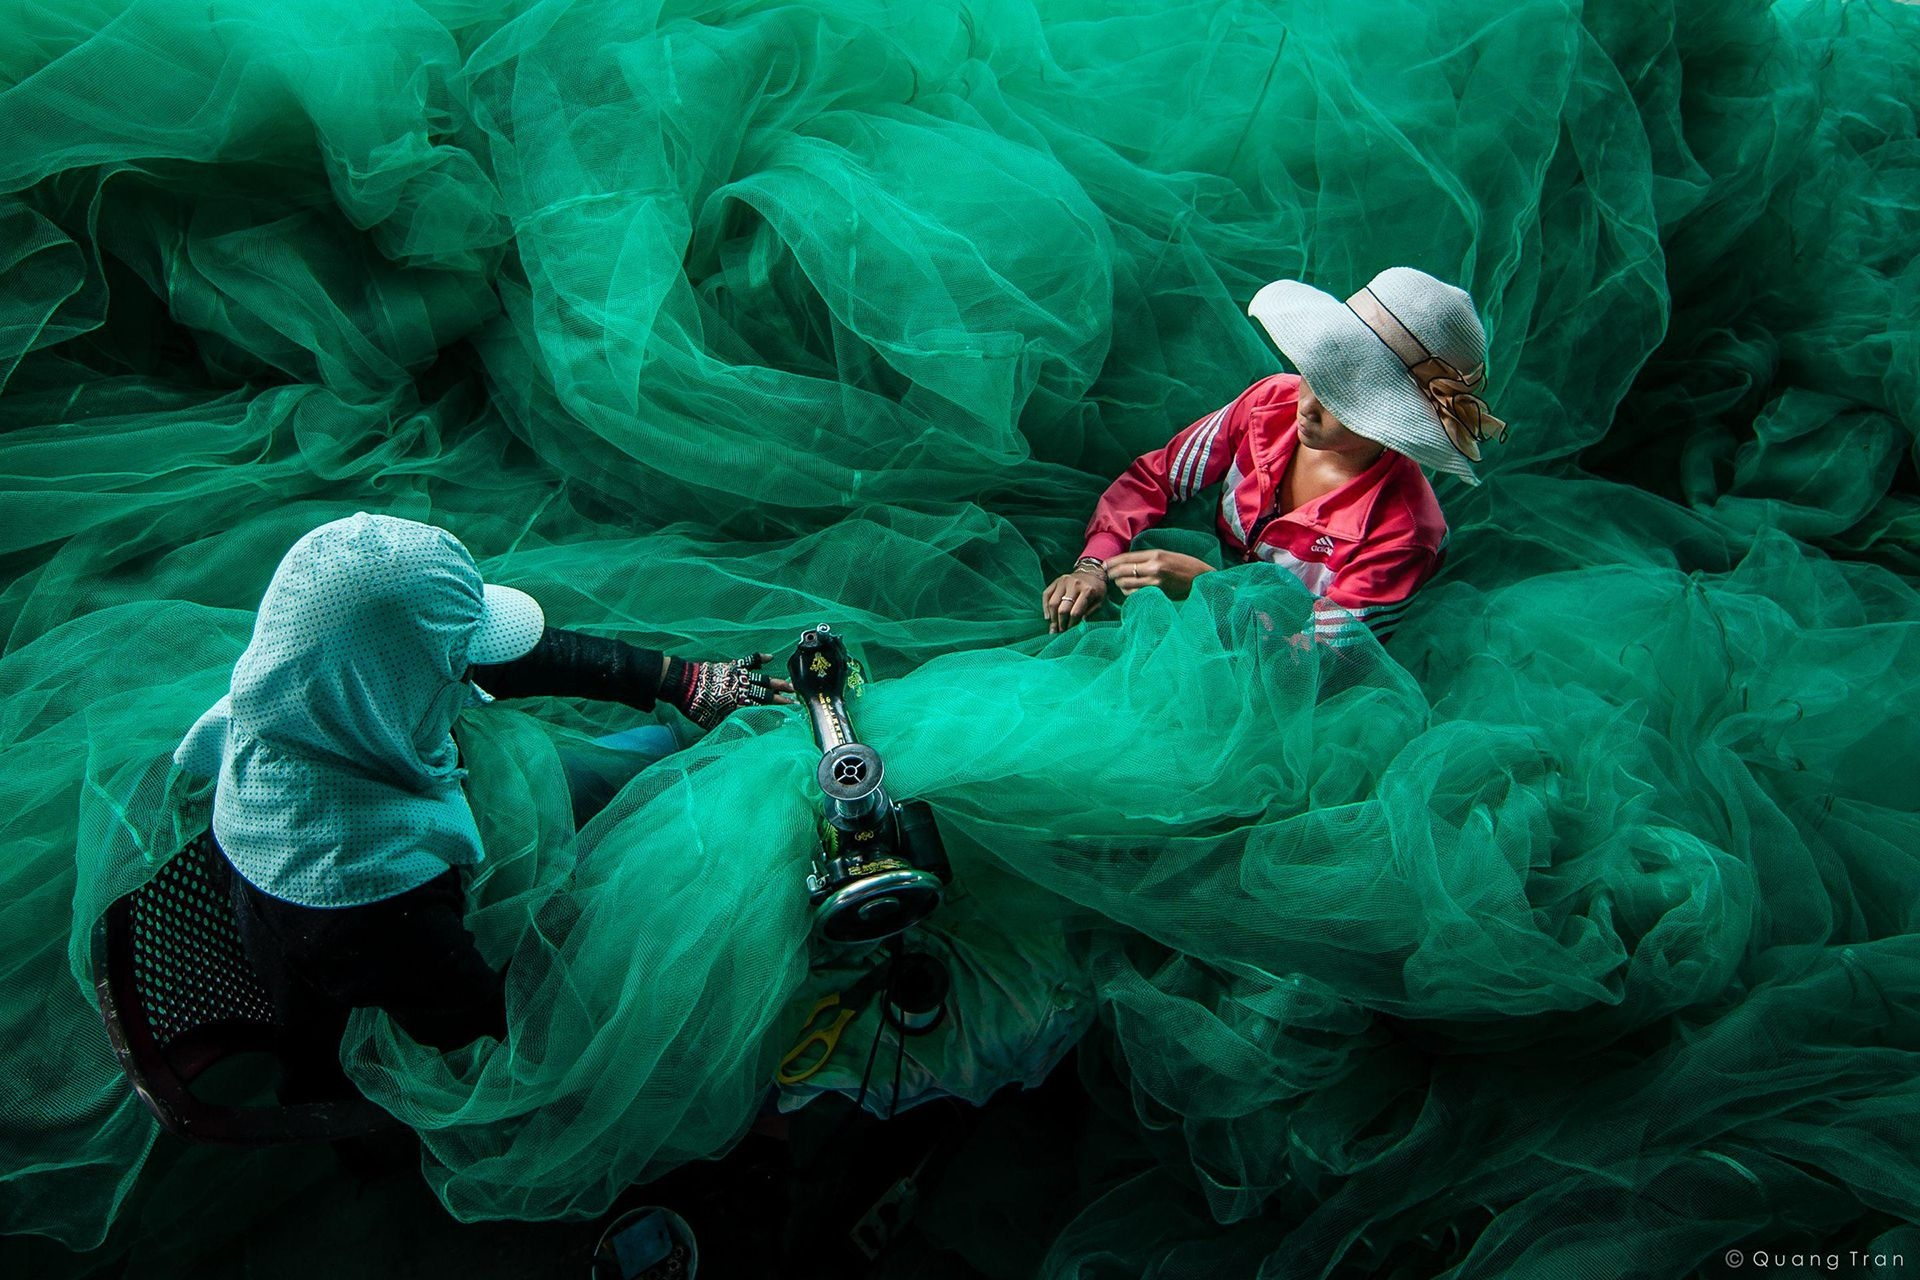 Photograph by Quang Tran, National Geographic Your Shot